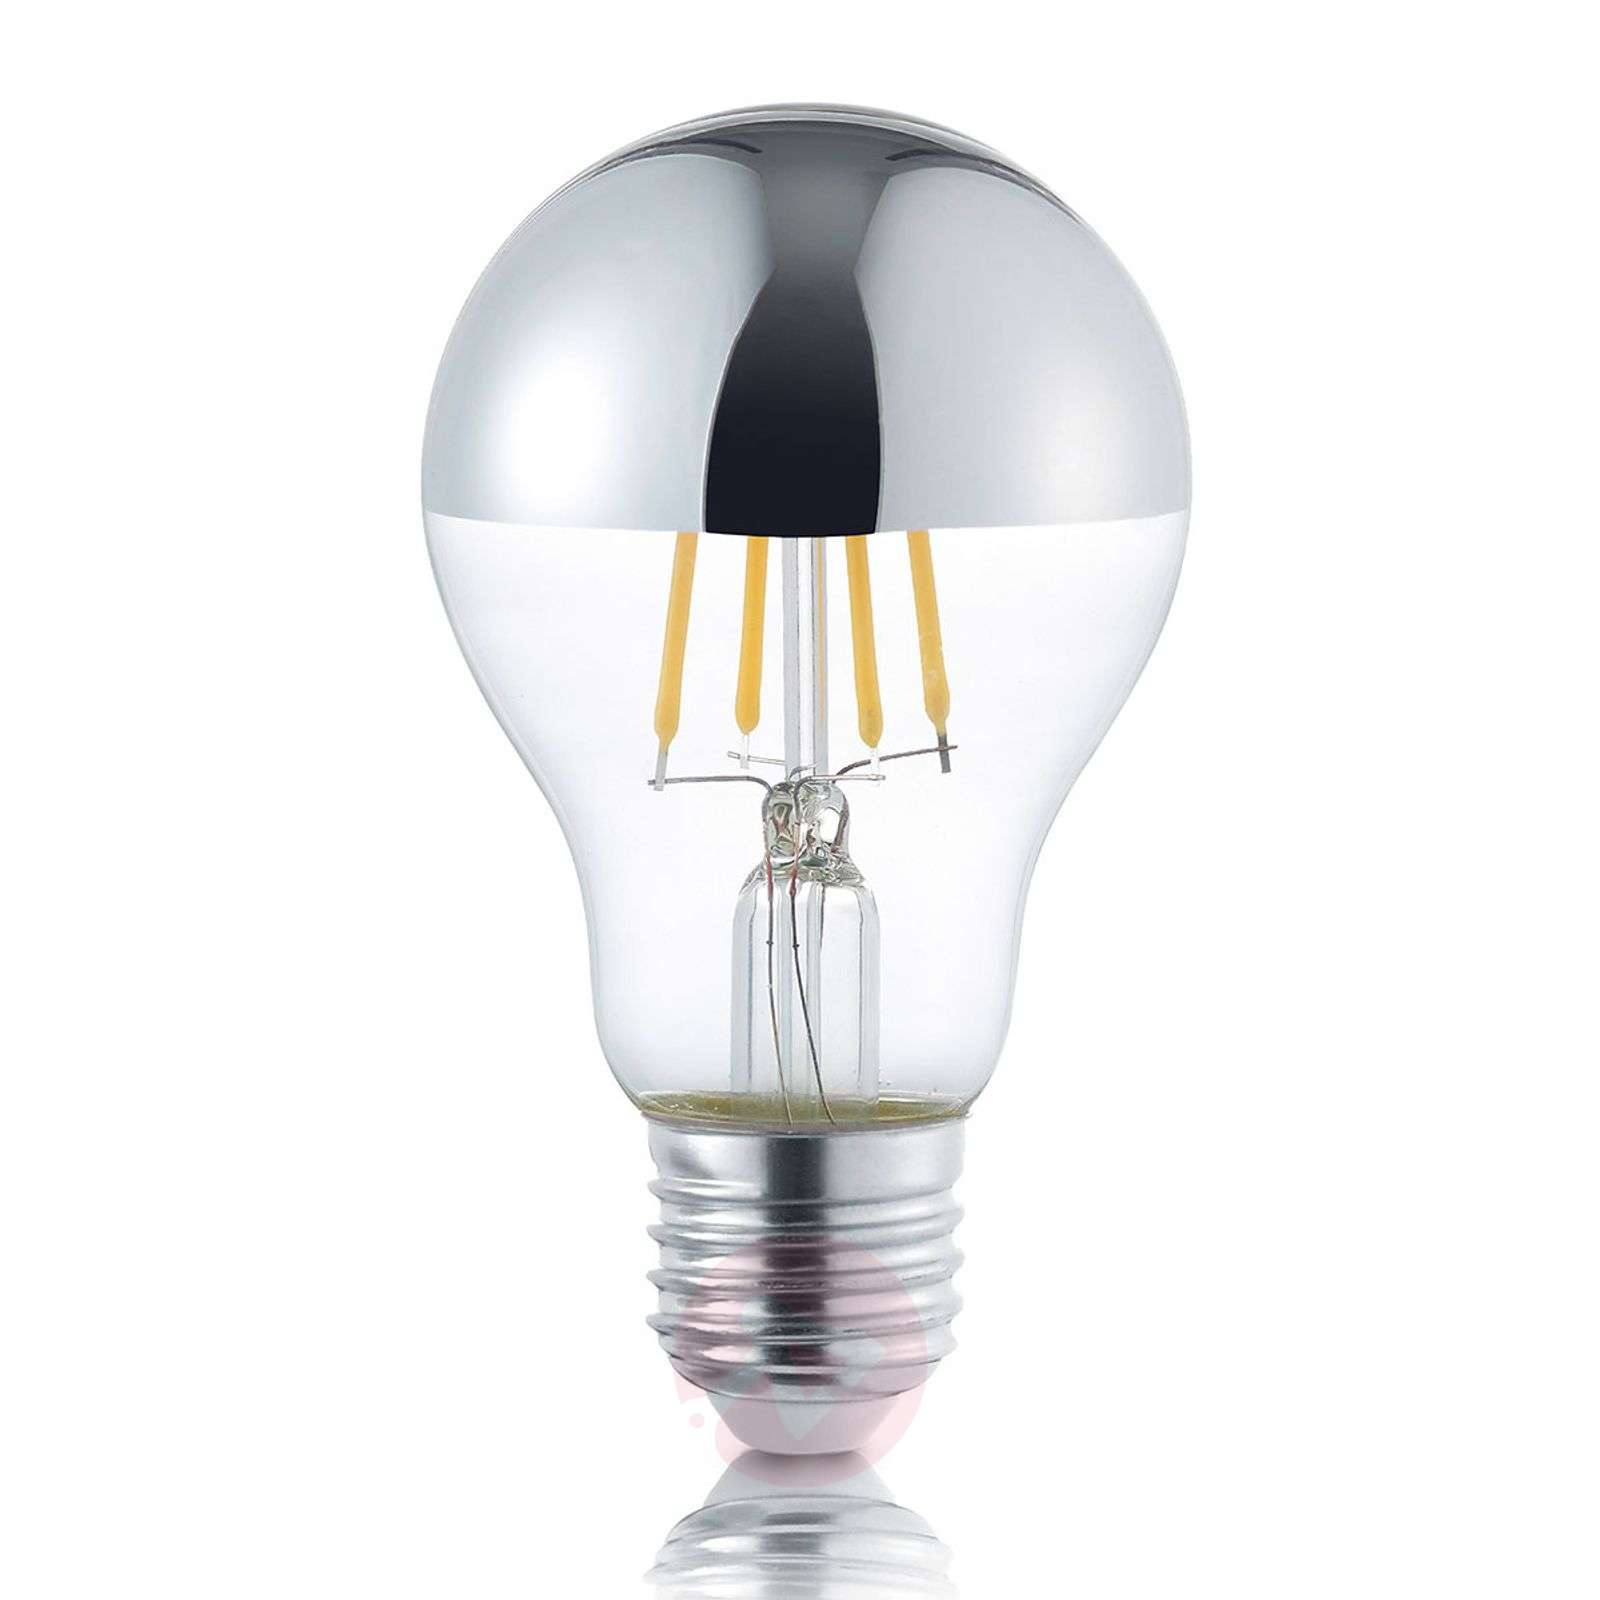 LED half mirror bulb E27 4 W, warm white-9004816-01